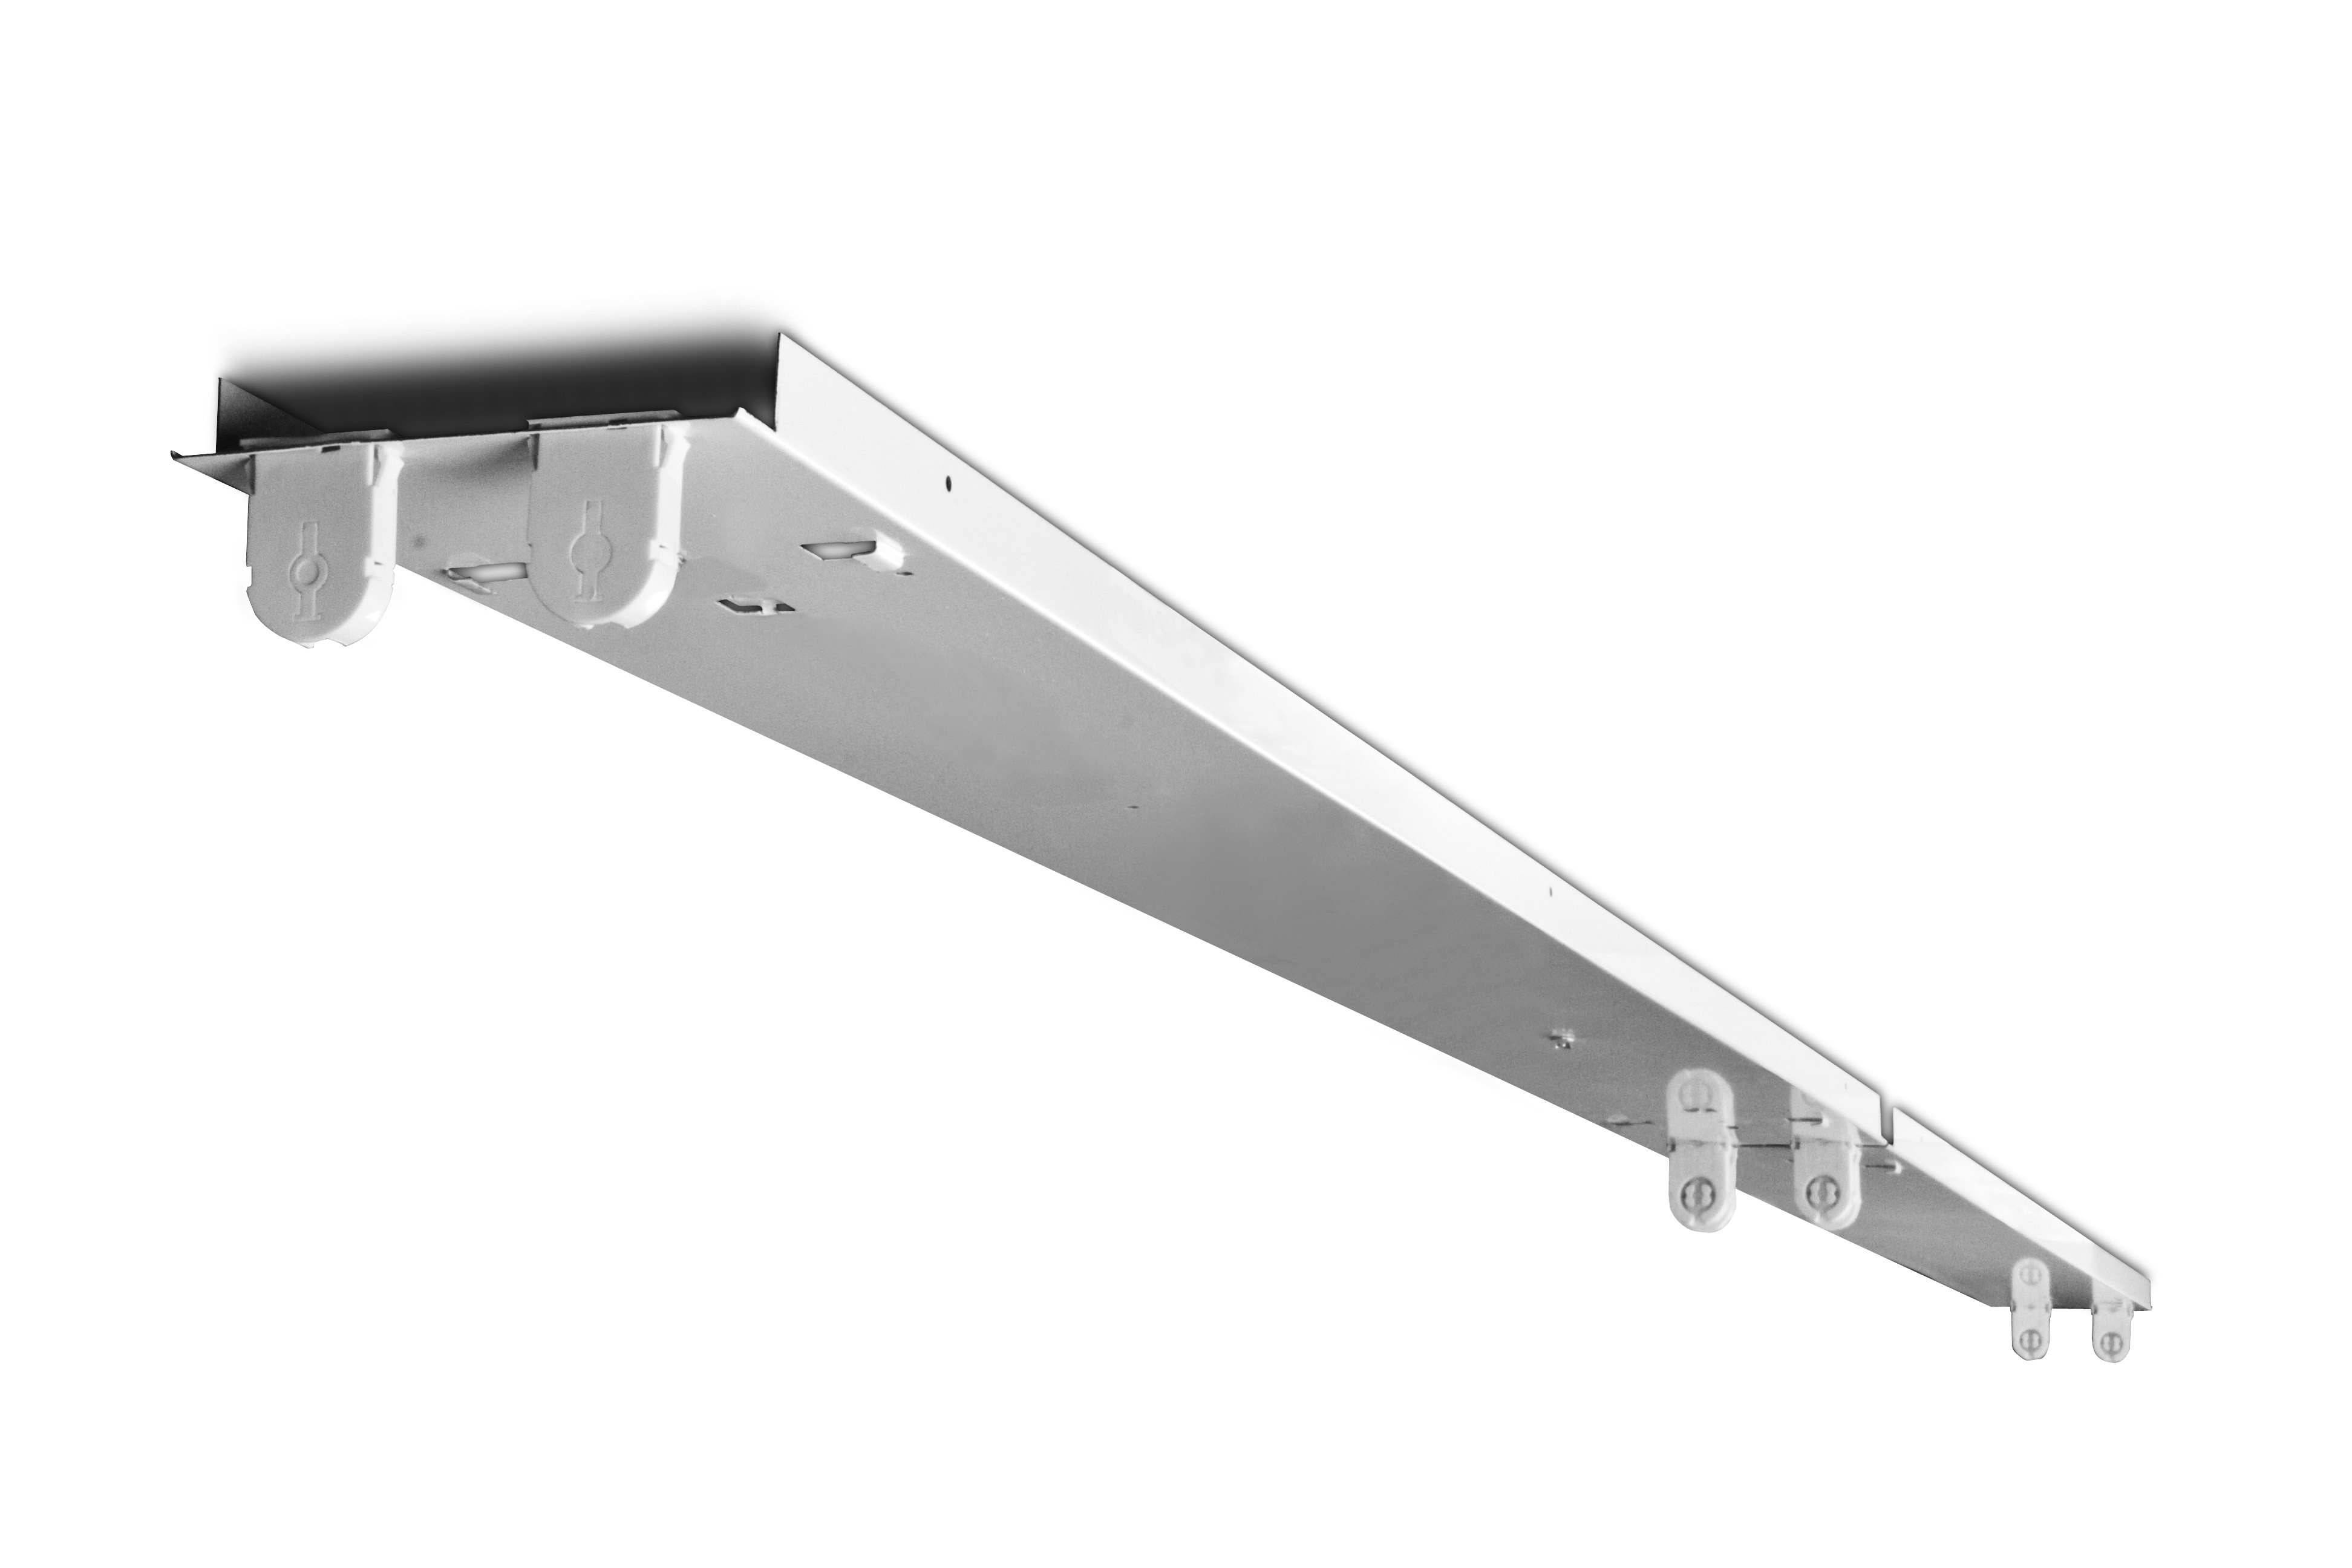 Howard Lighting FSR84432ASEMV000I 8 Foot Foot T8-T12 Fluorescent ...